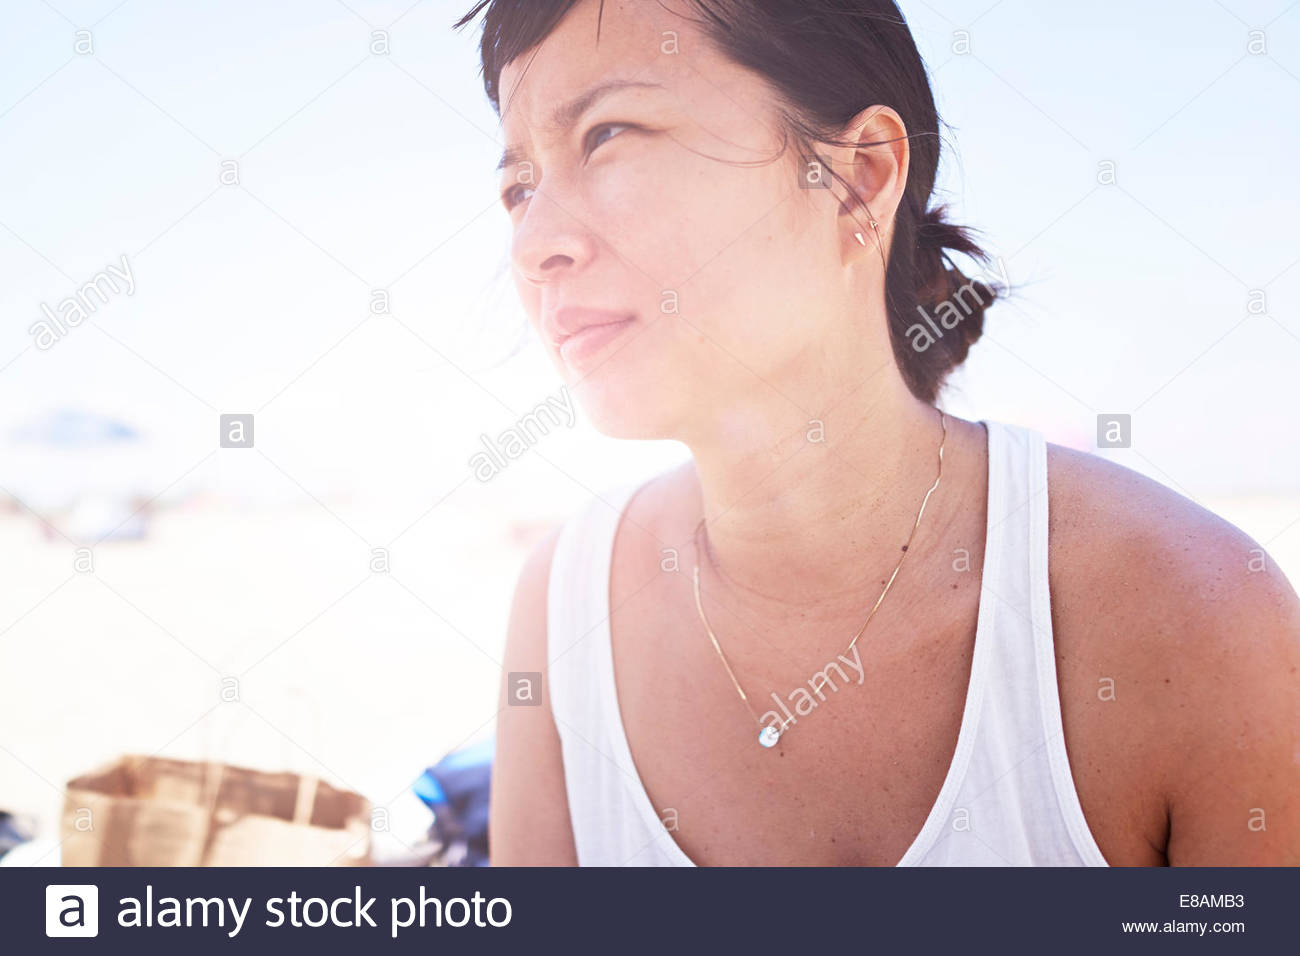 Close up candid portrait of mid adult woman - Stock Image